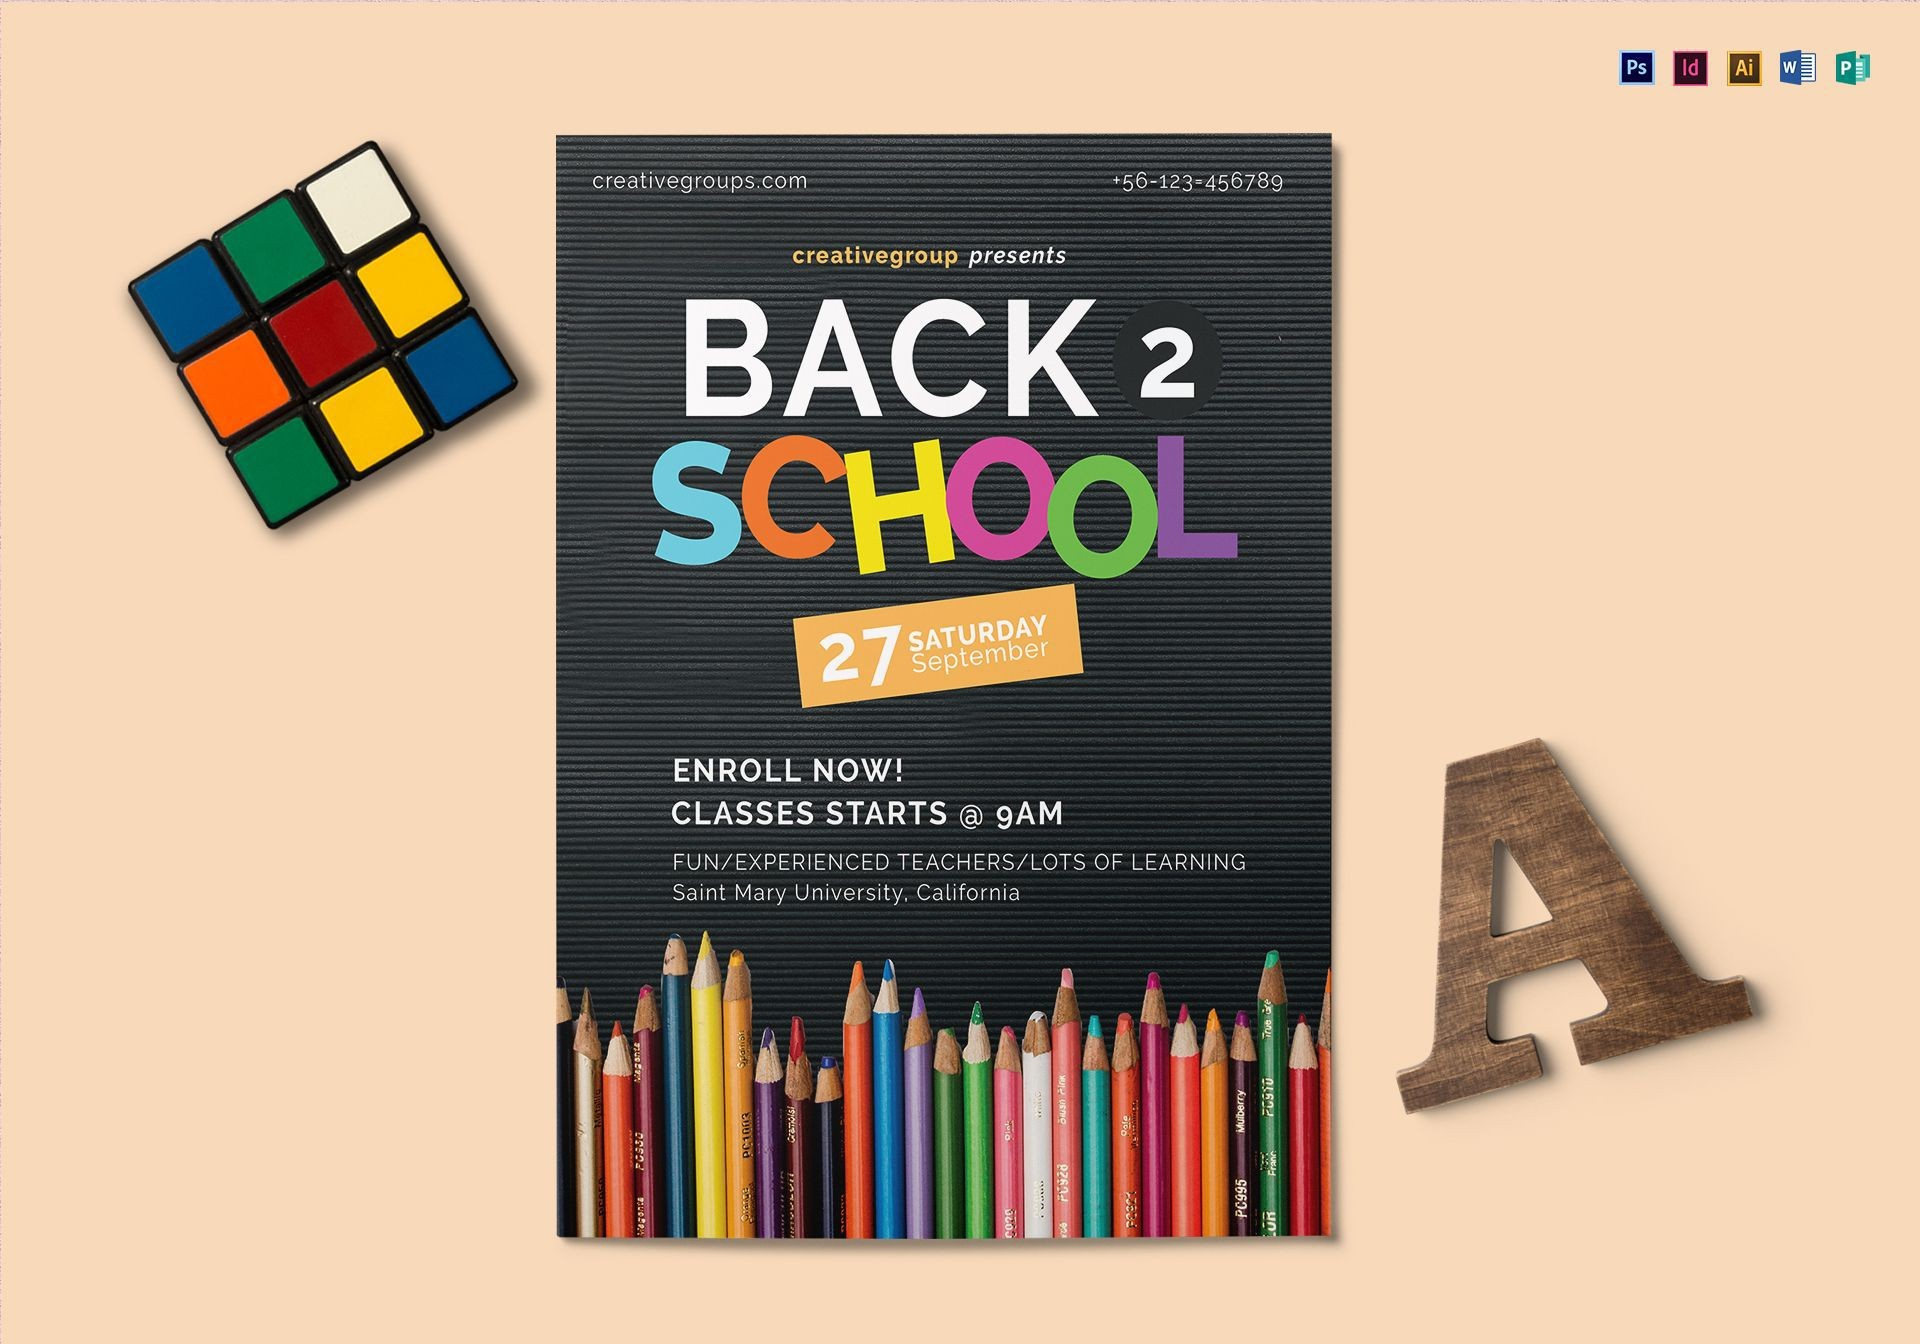 004 Remarkable Free School Event Flyer Template Example  Templates1920